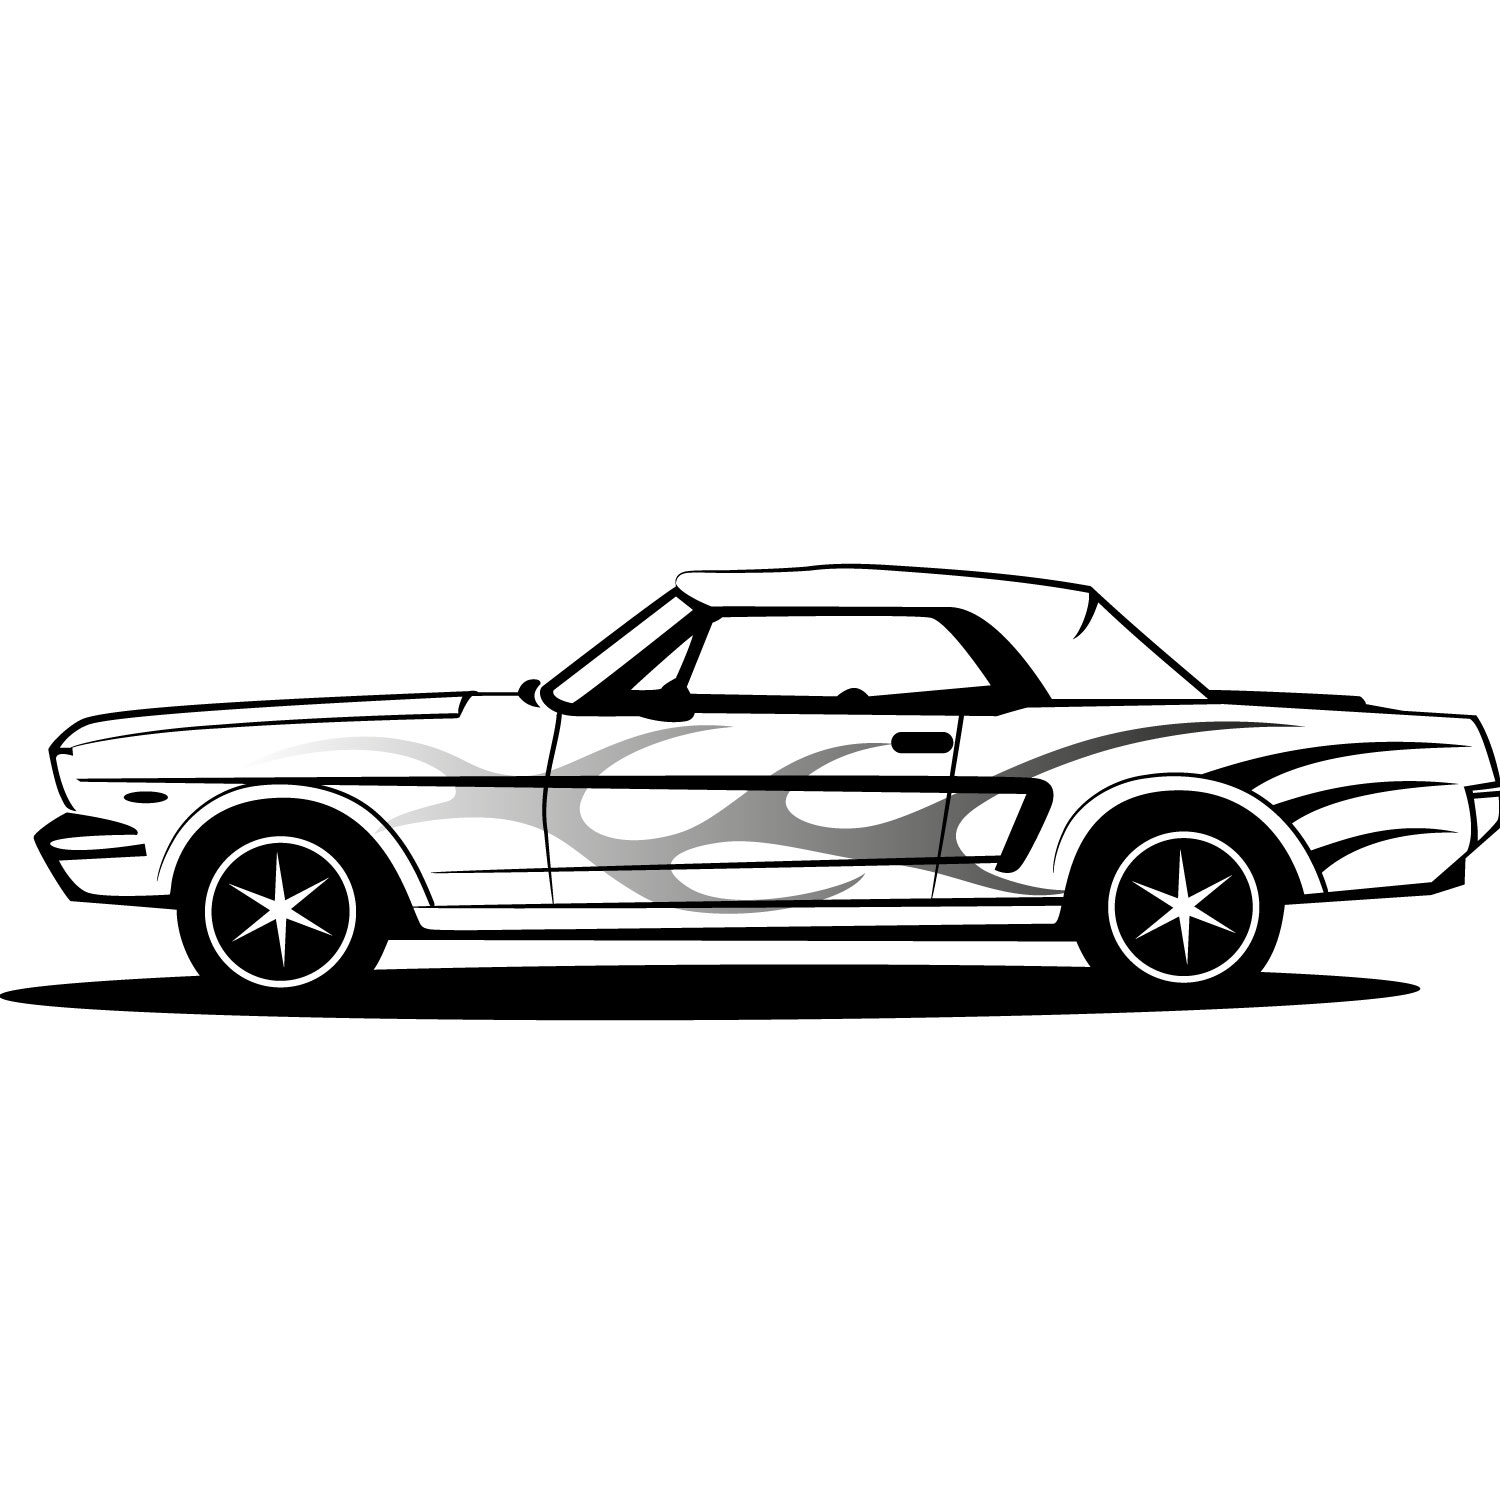 Black And White Ford: Clipart Panda - Free Clipart Images